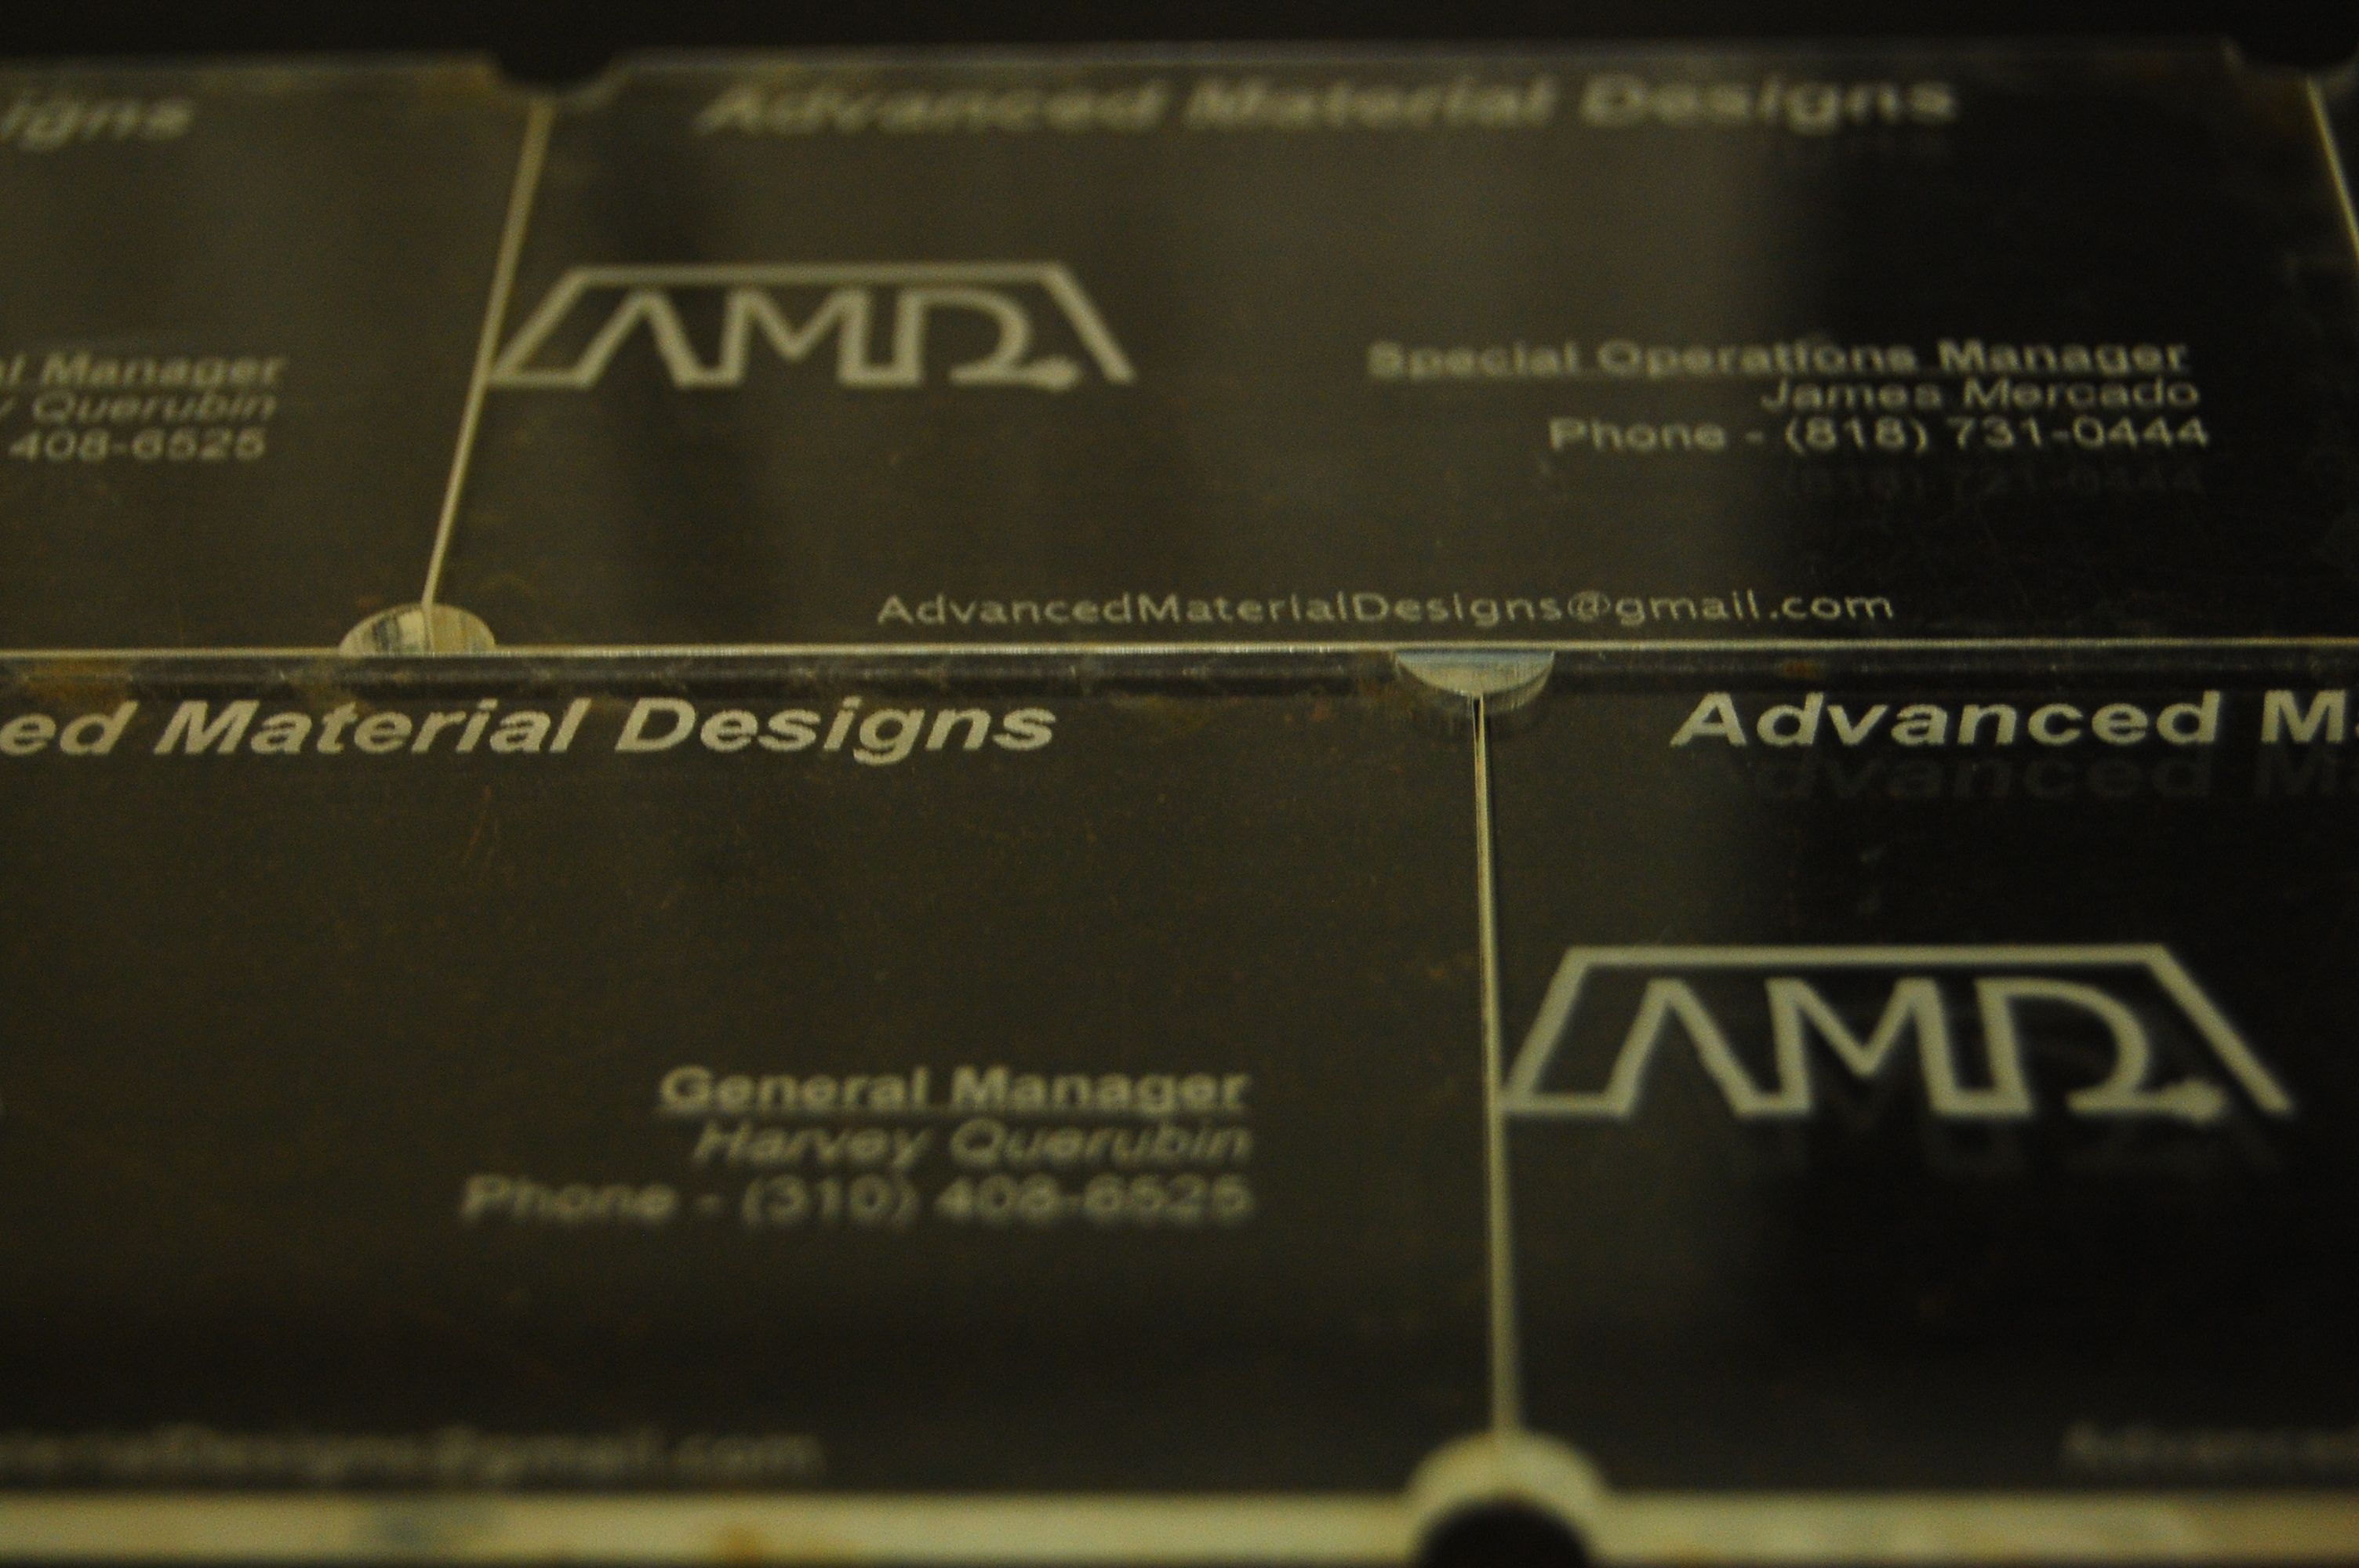 Custom specialized business cards arcylic by amd custom specialized business cards arcylic by amd advancedmaterialdesigns colourmoves